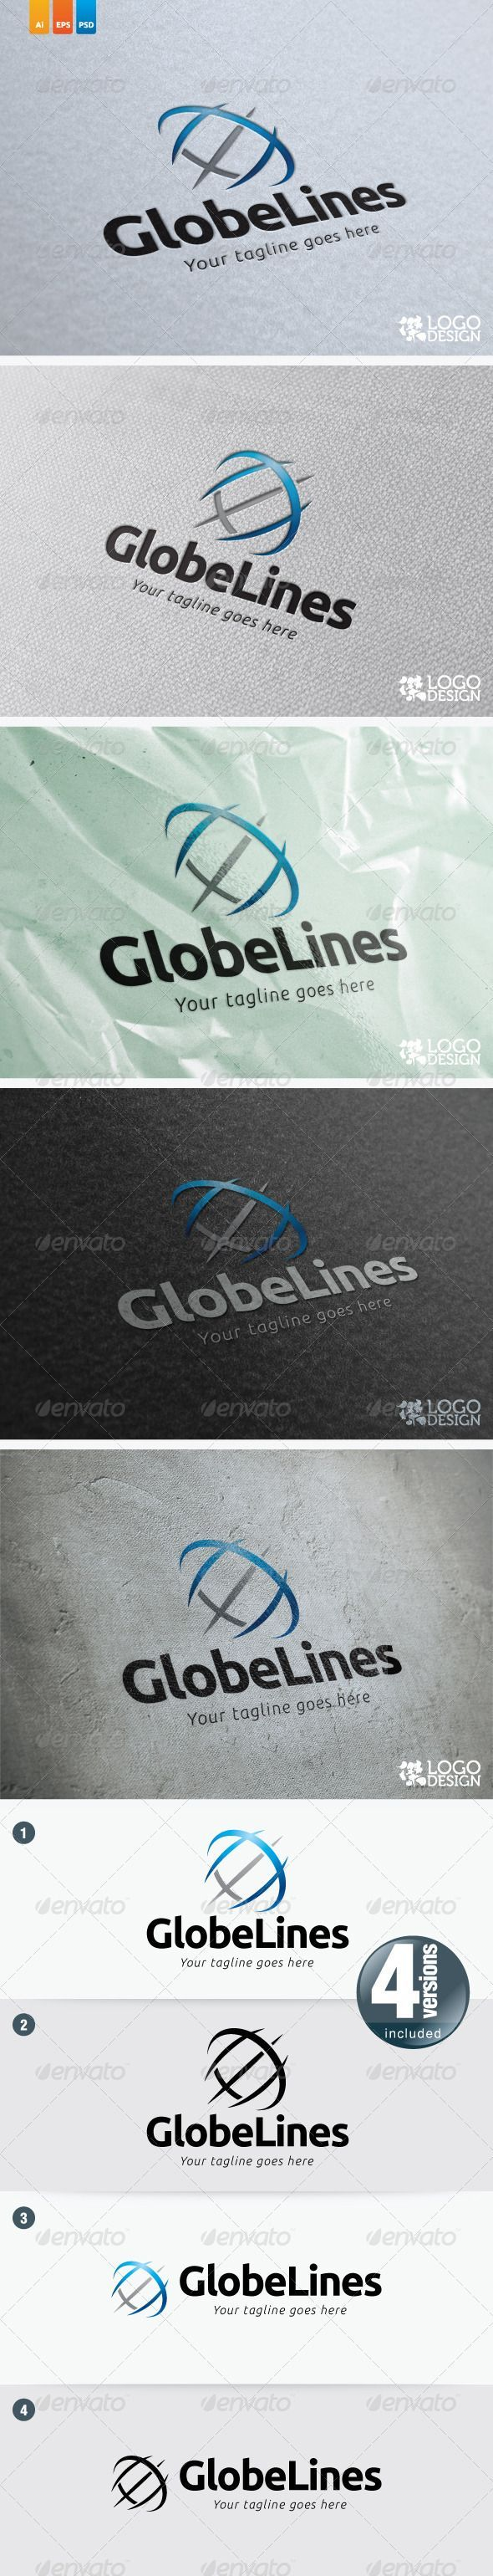 Globe Lines This logo perfectly use for marketing business investment related businesses internet apps financial planning bu